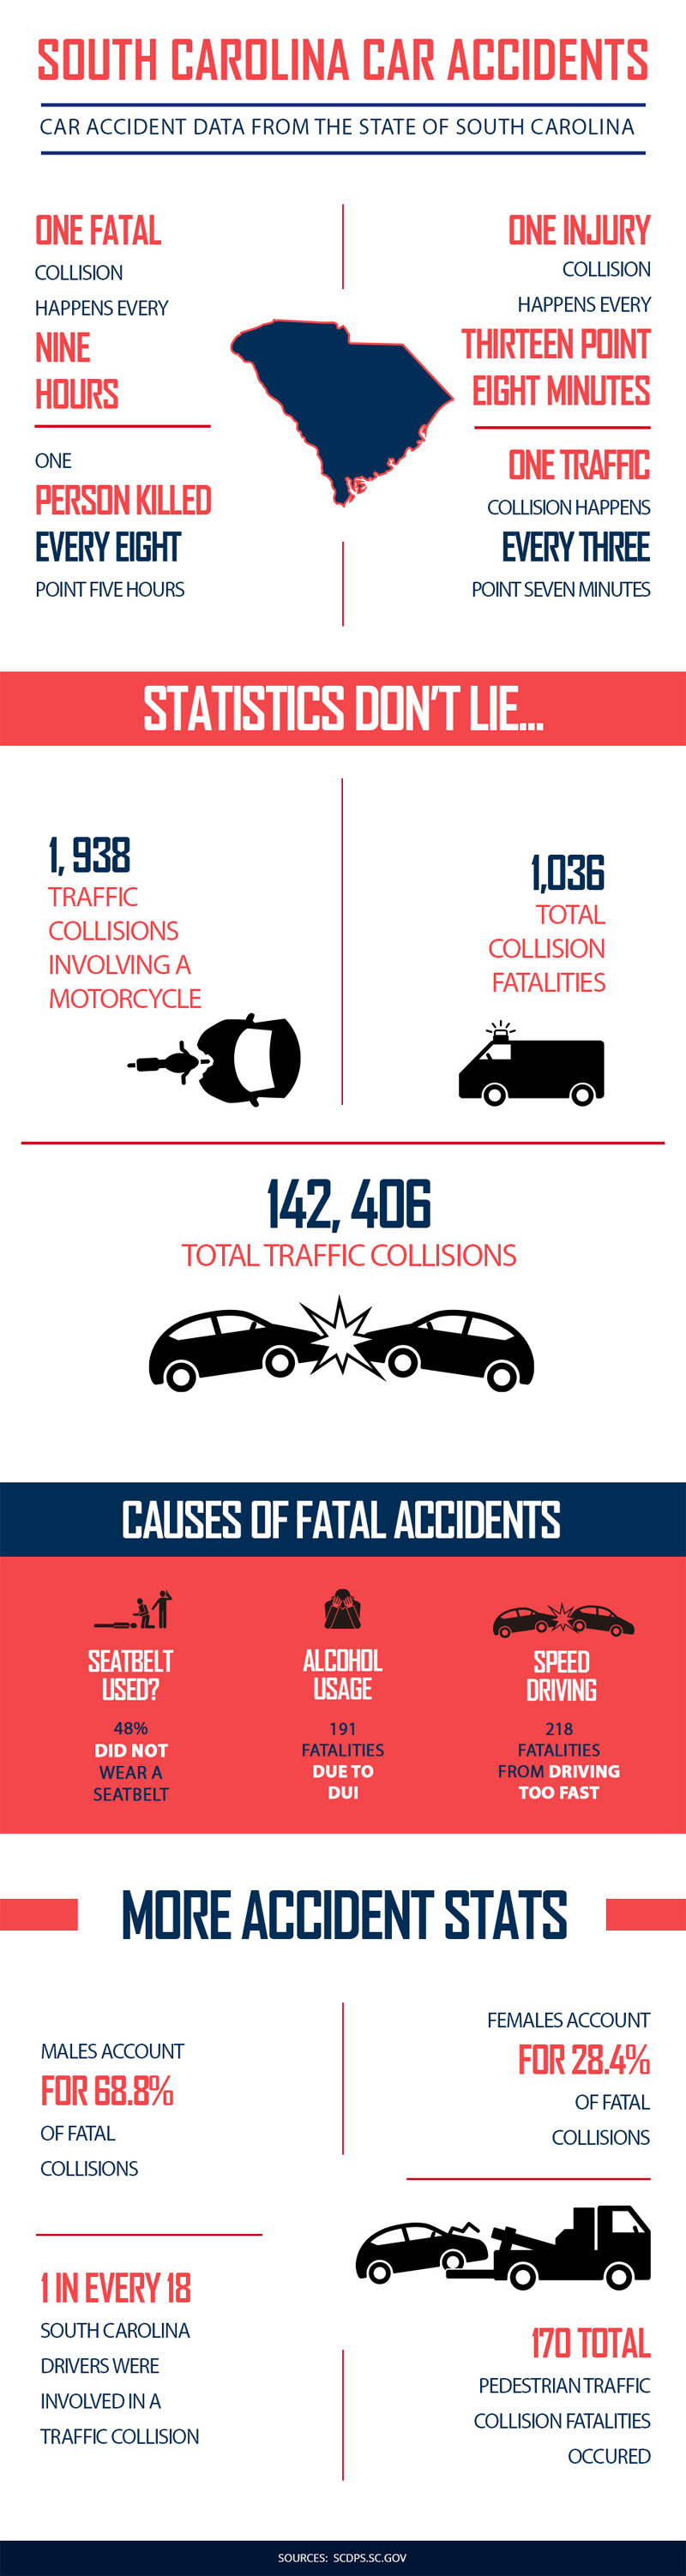 South Carolina Car Accidents Infographic